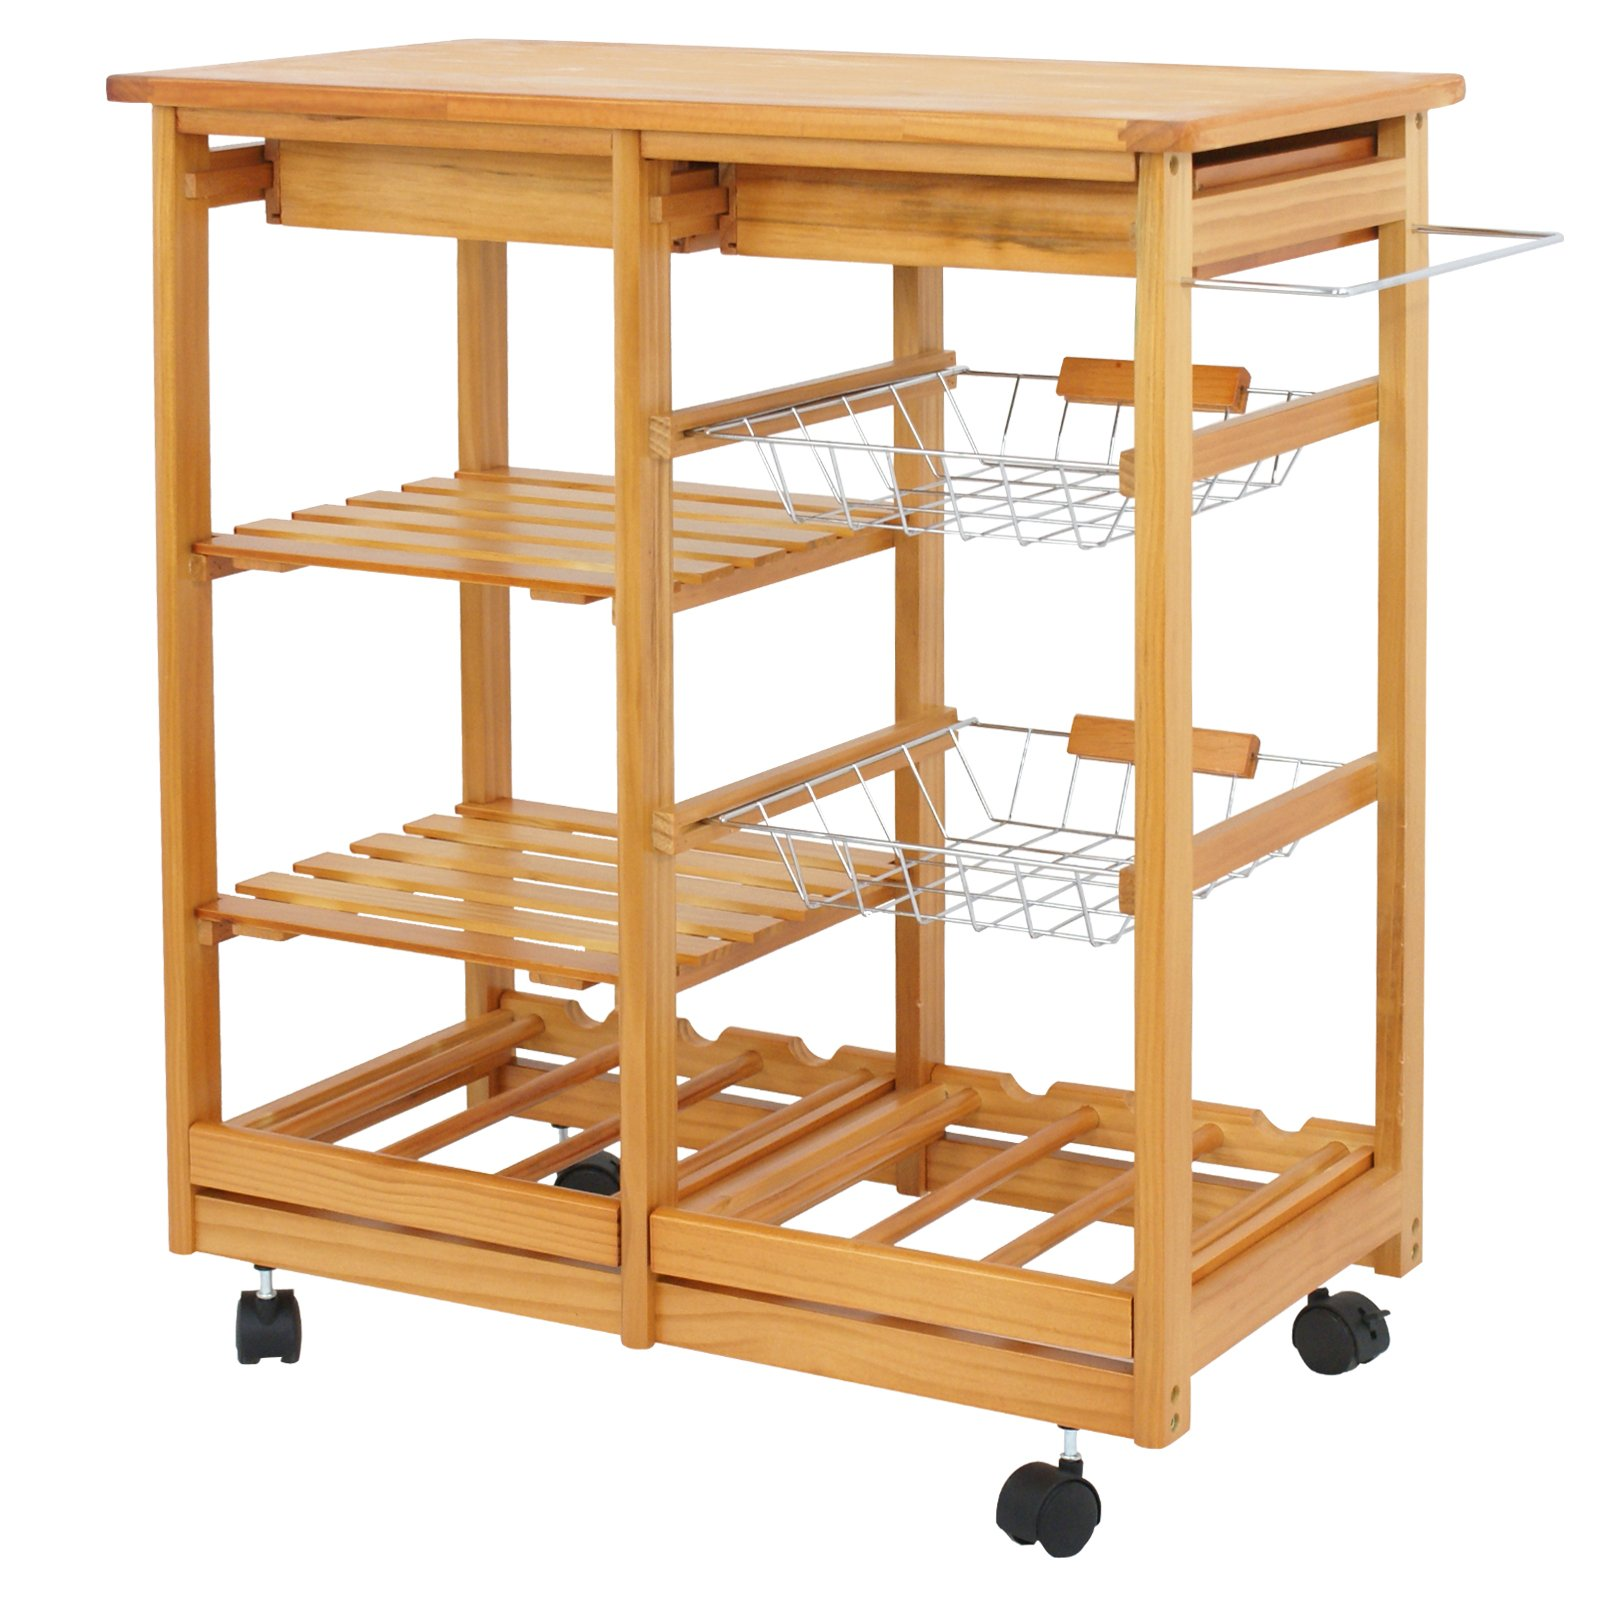 SUPER DEAL Multi-Purpose Wood Rolling Kitchen Island Trolley w/Drawer Shelves Basket by SUPER DEAL (Image #5)